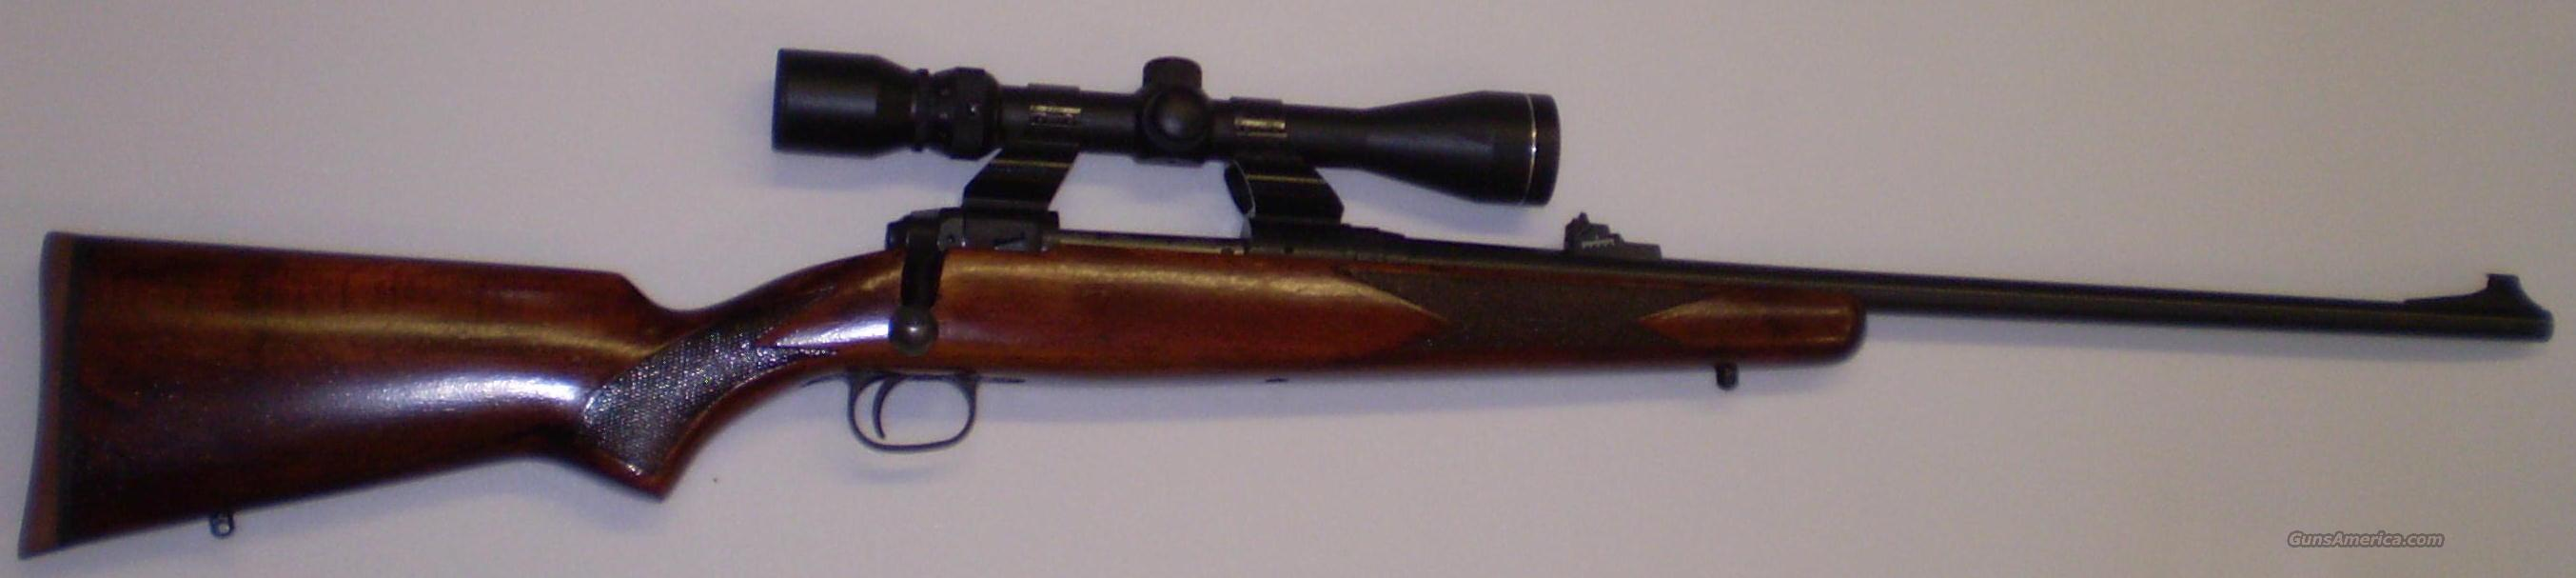 Savage Model 10 Bolt 243 w/Tasco Scope  Guns > Rifles > Savage Rifles > Standard Bolt Action > Sporting